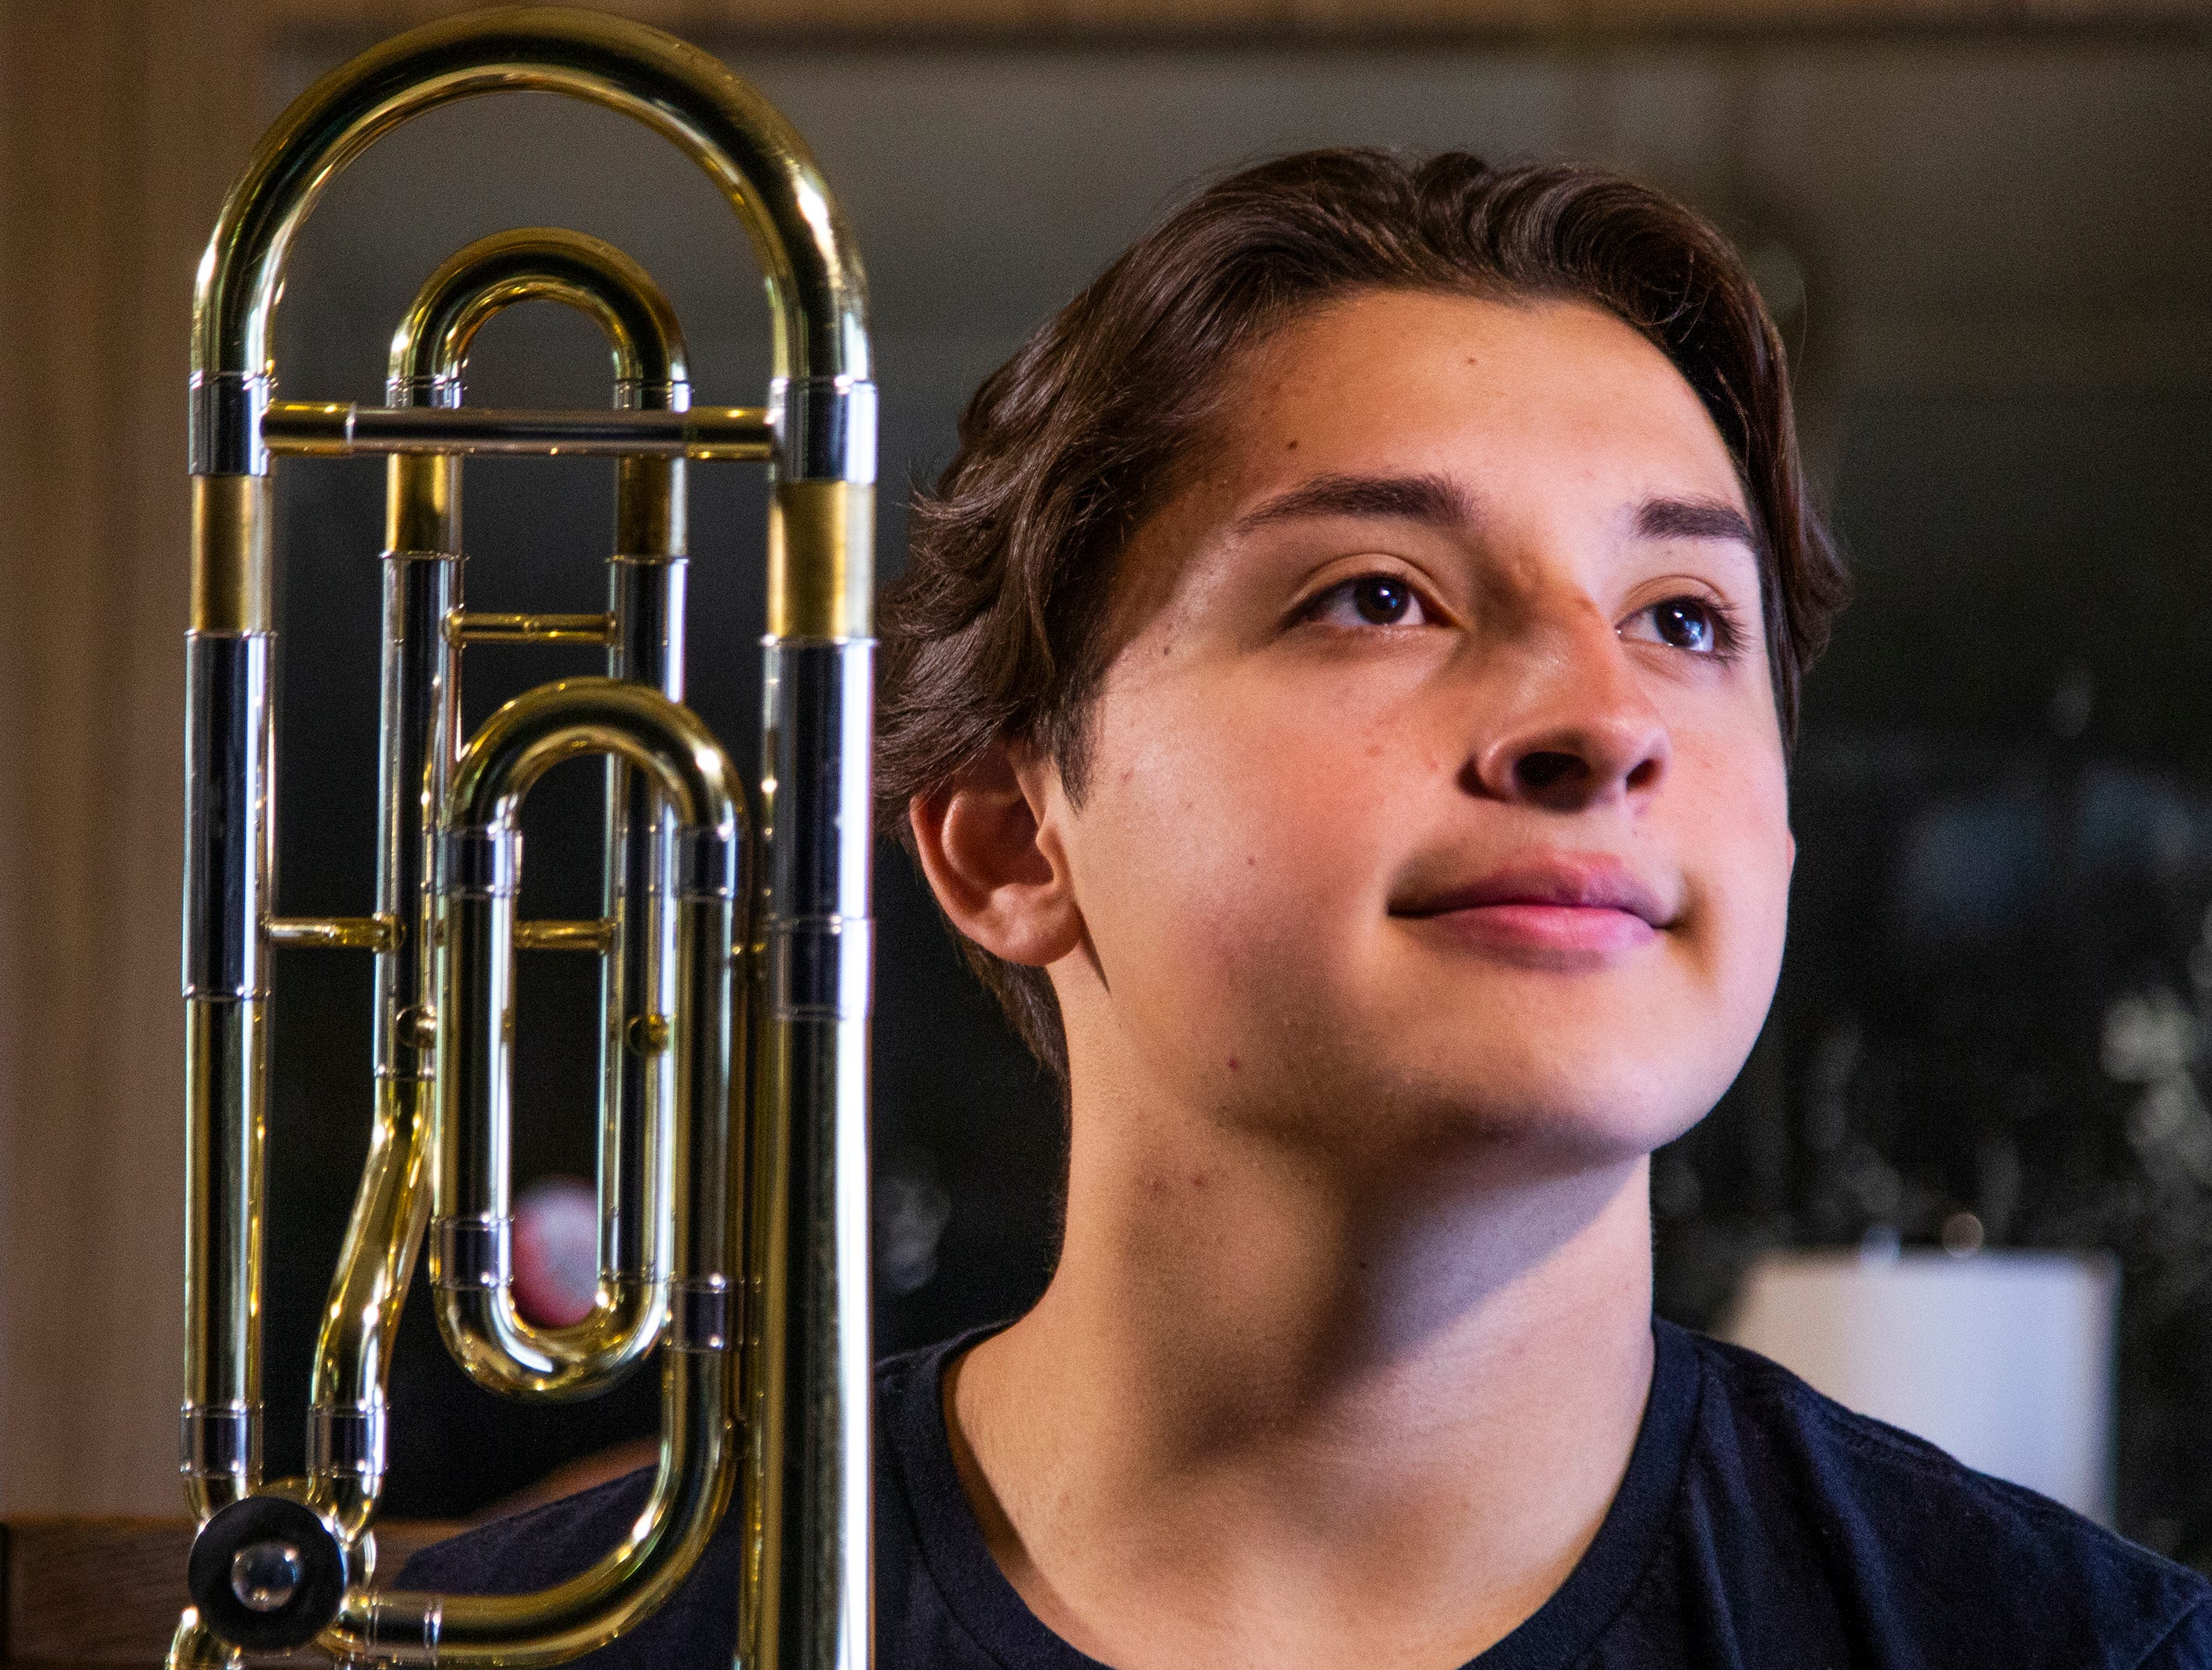 Samuel Osornio, 15, a student at Mesa High School, poses with his trombone at home, Feb. 22, 2019.